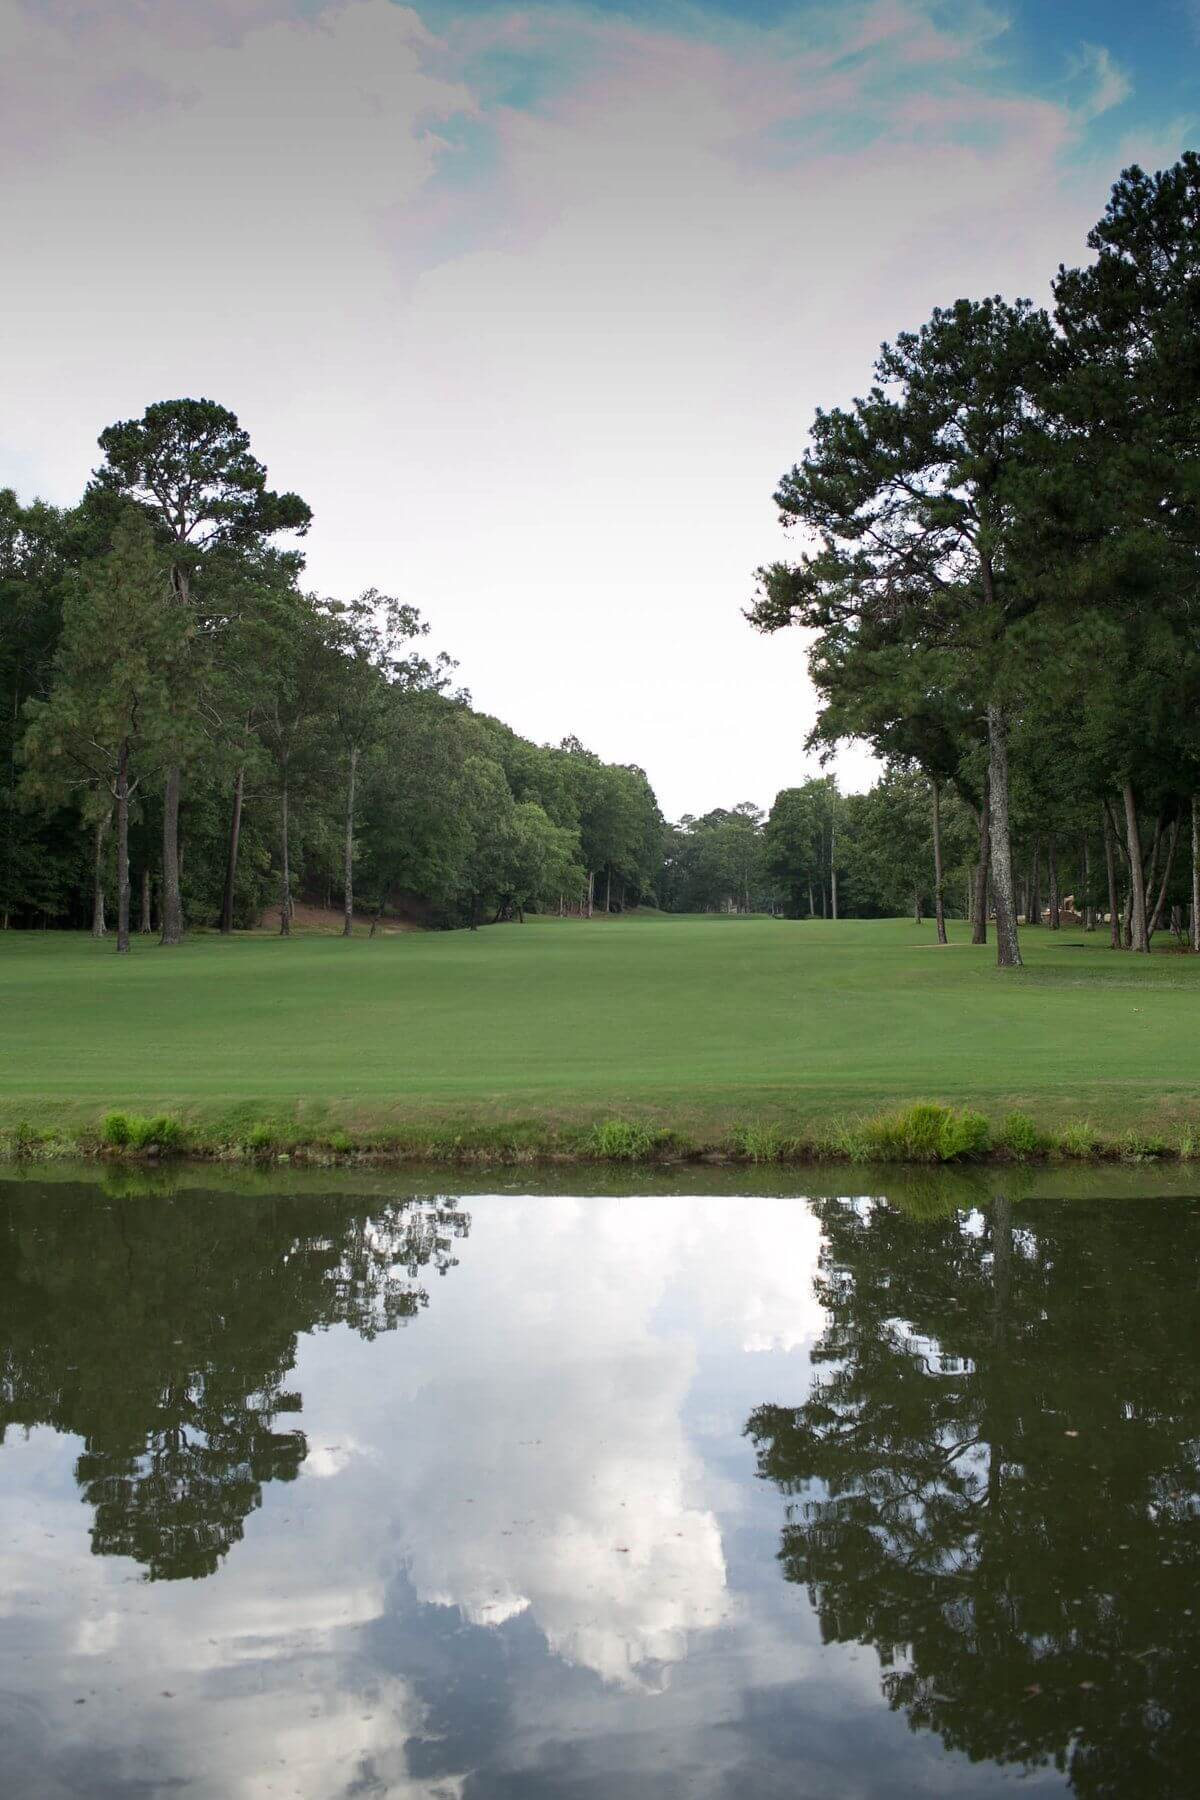 The well manicured golf course complements the splendor of the untouched land.